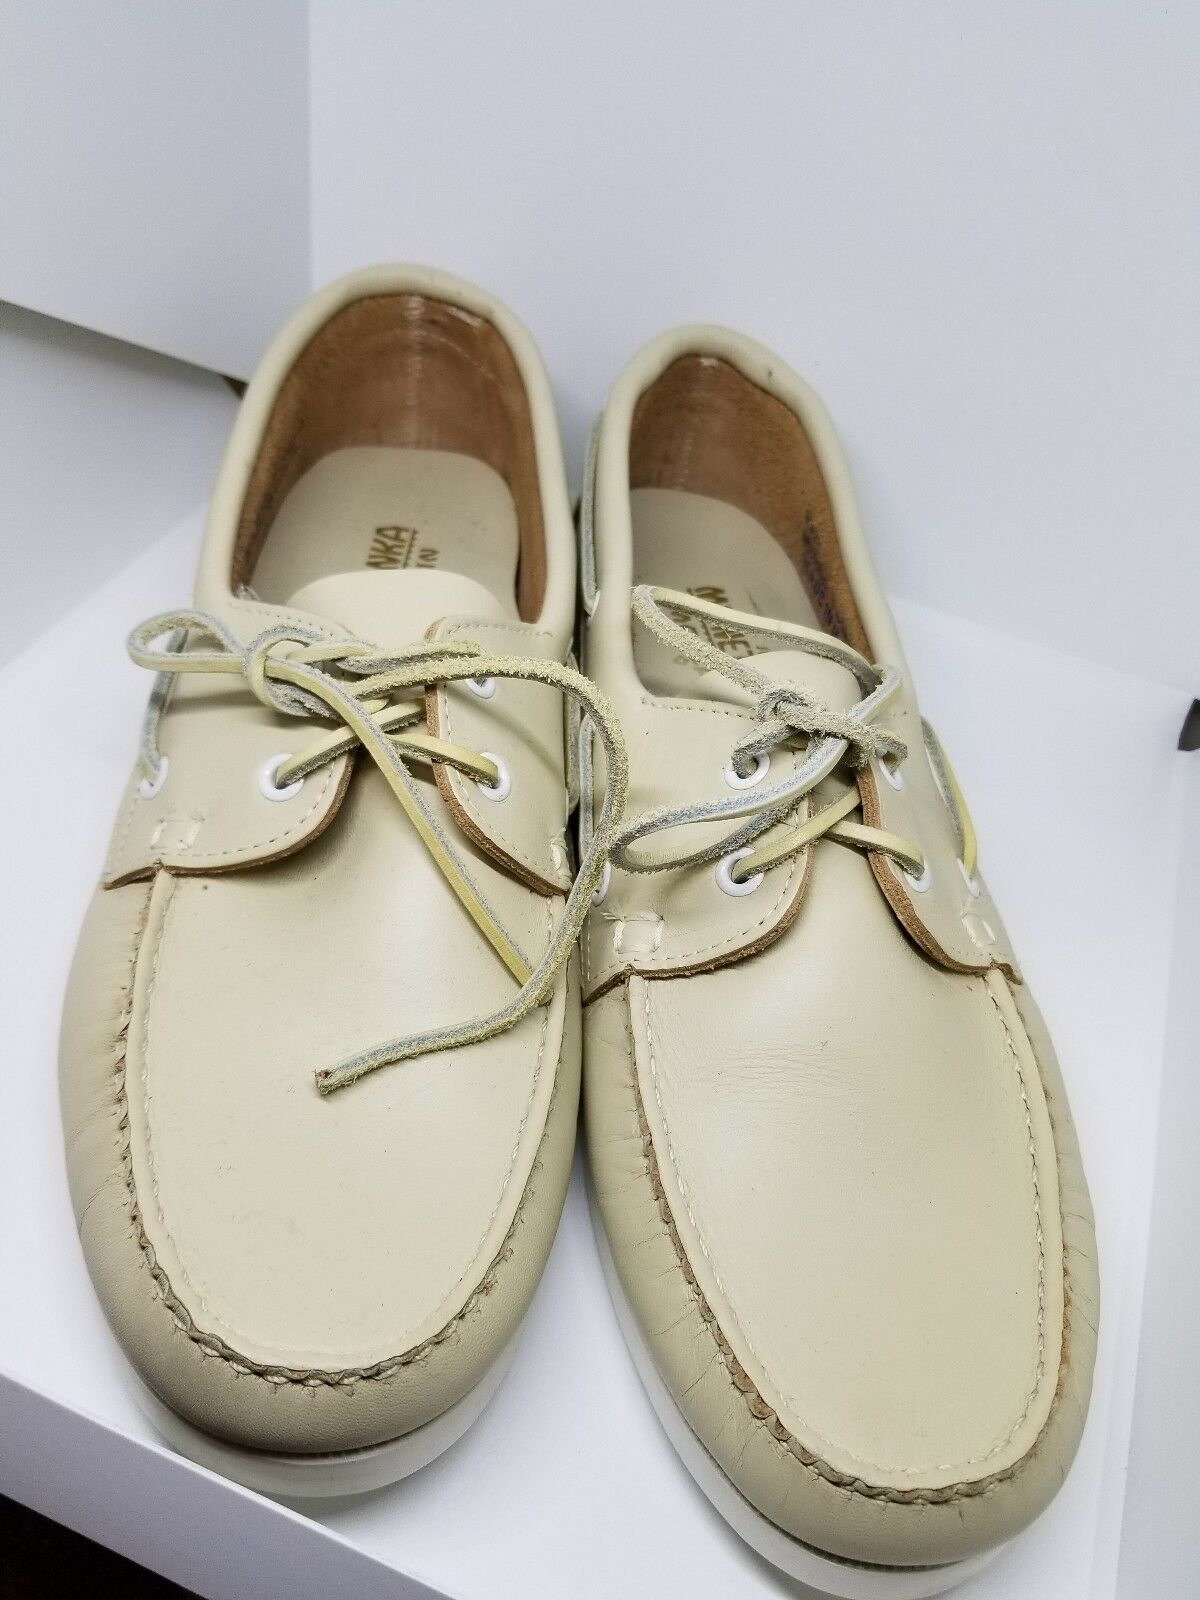 New MINNETONKA MOCCASIN cream Leather 11 Boat Shoes Men's Sz. 11 Leather 463725